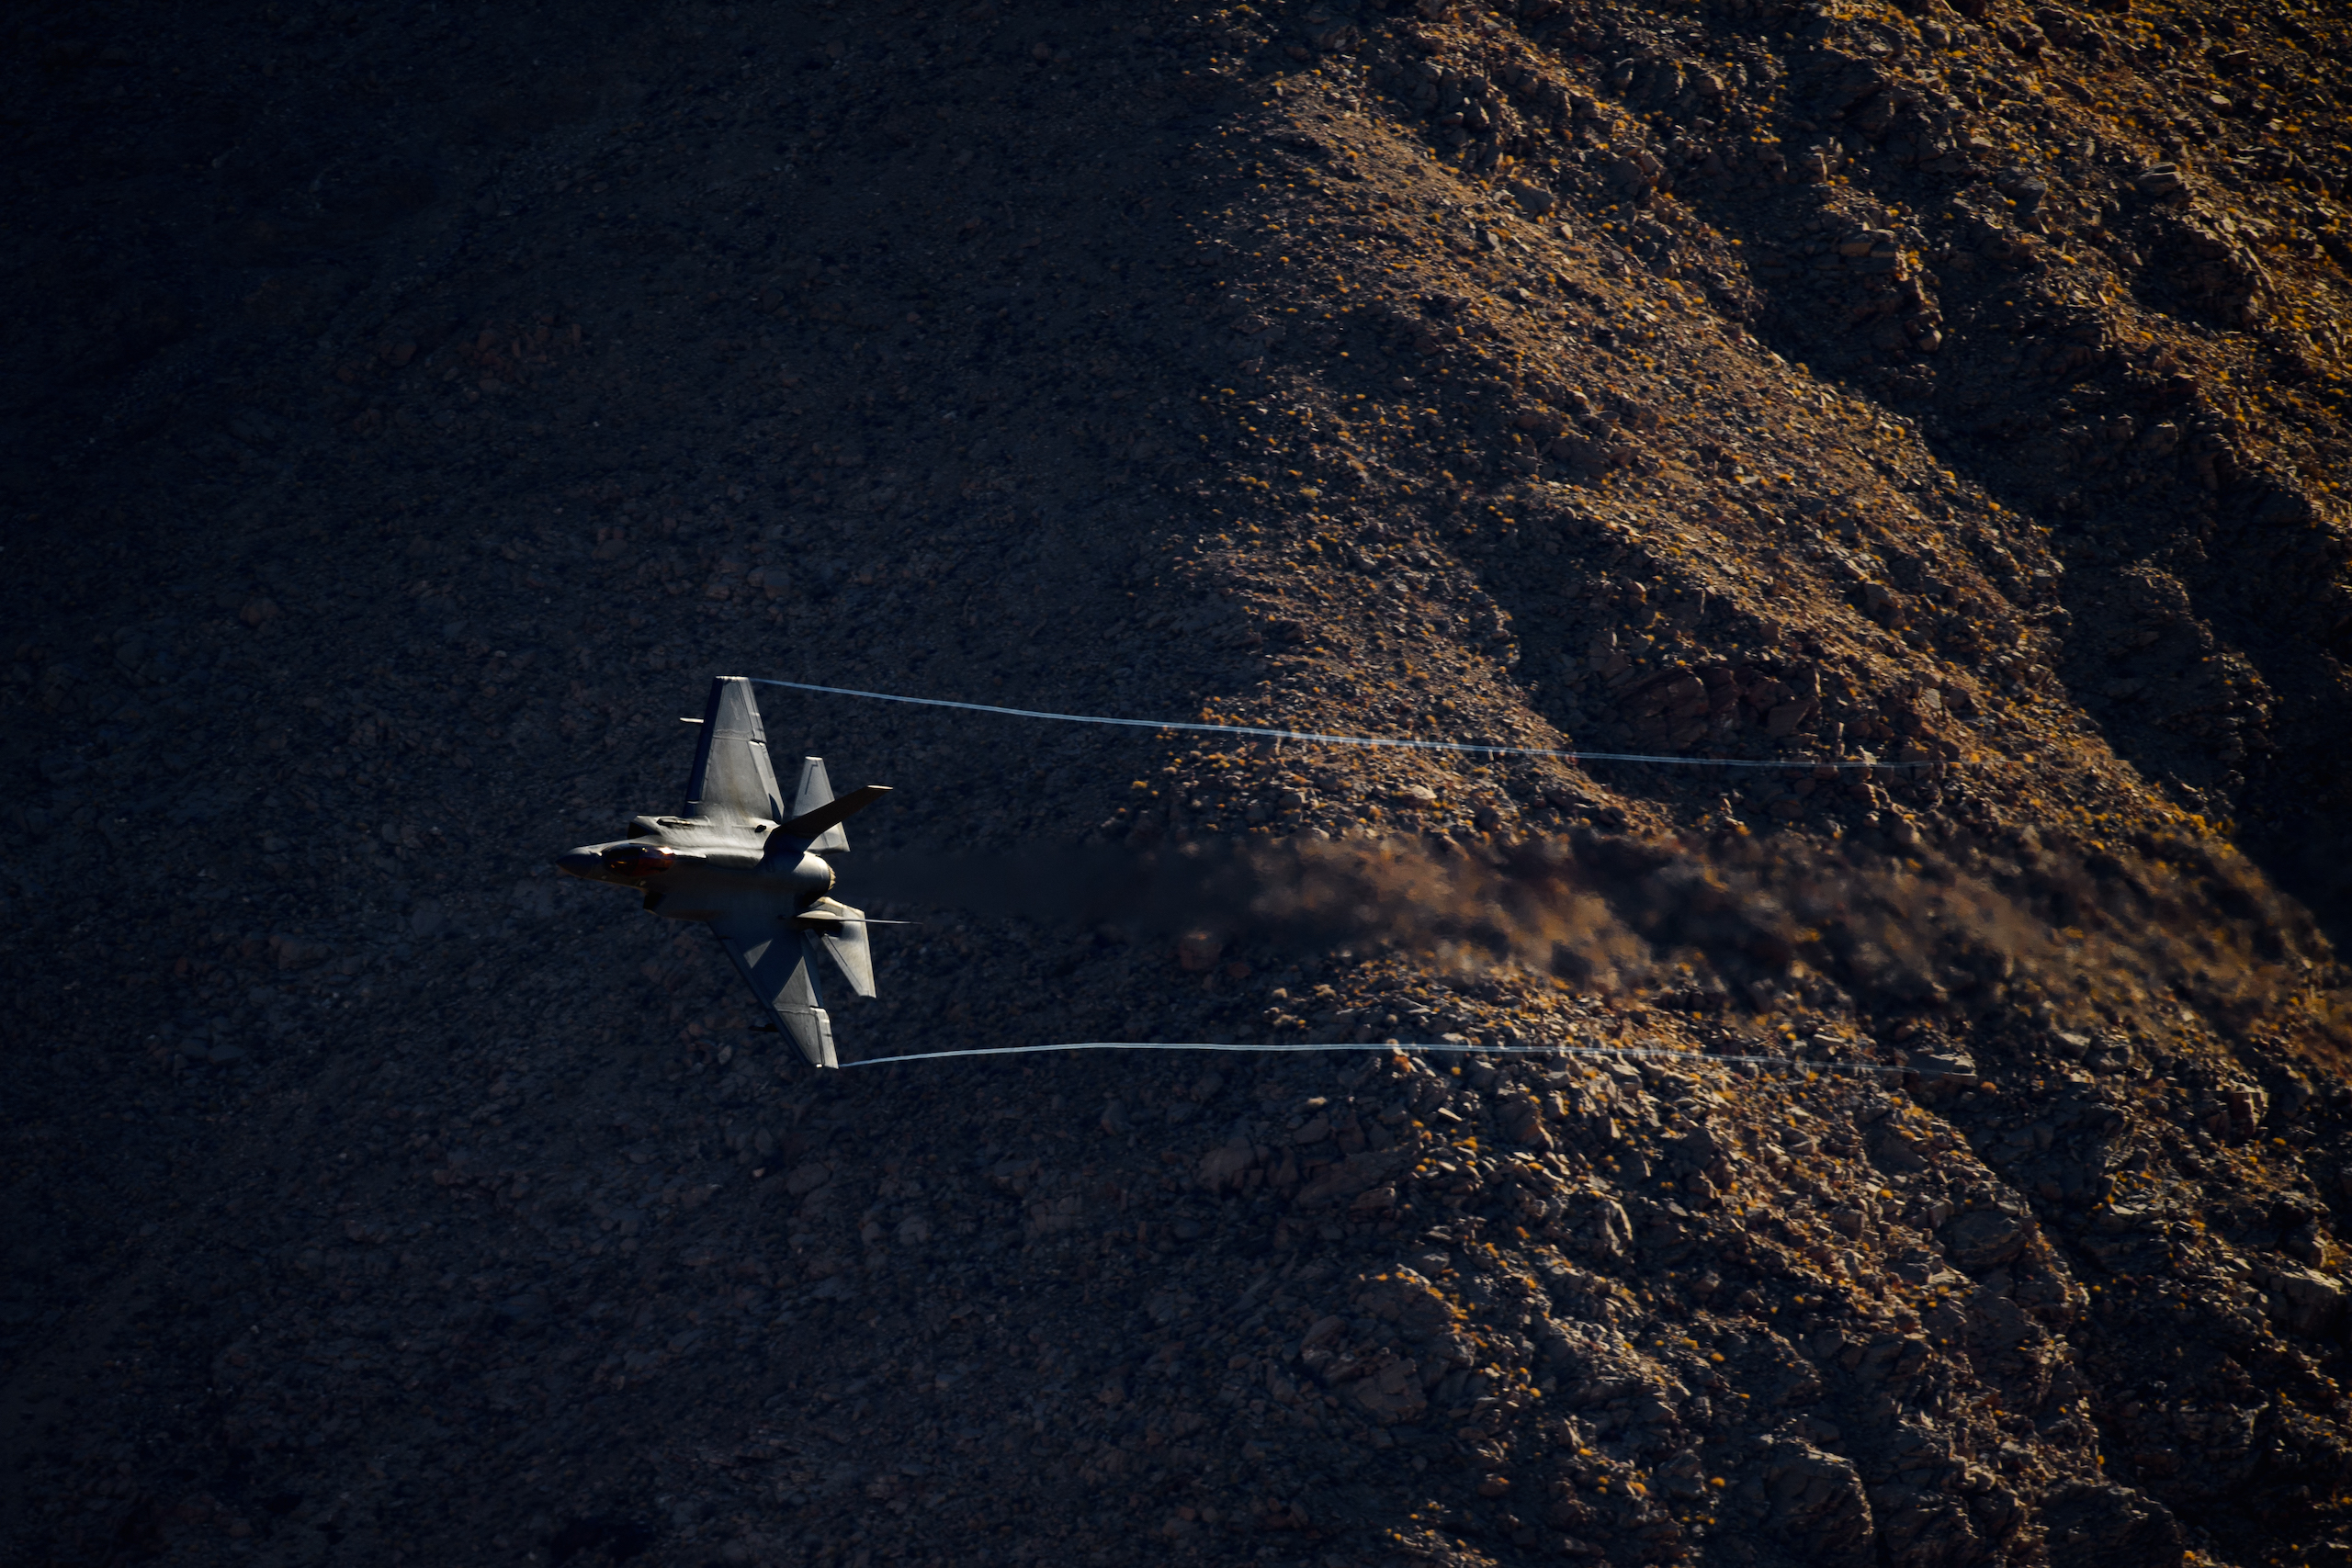 fighter jet low altitude action